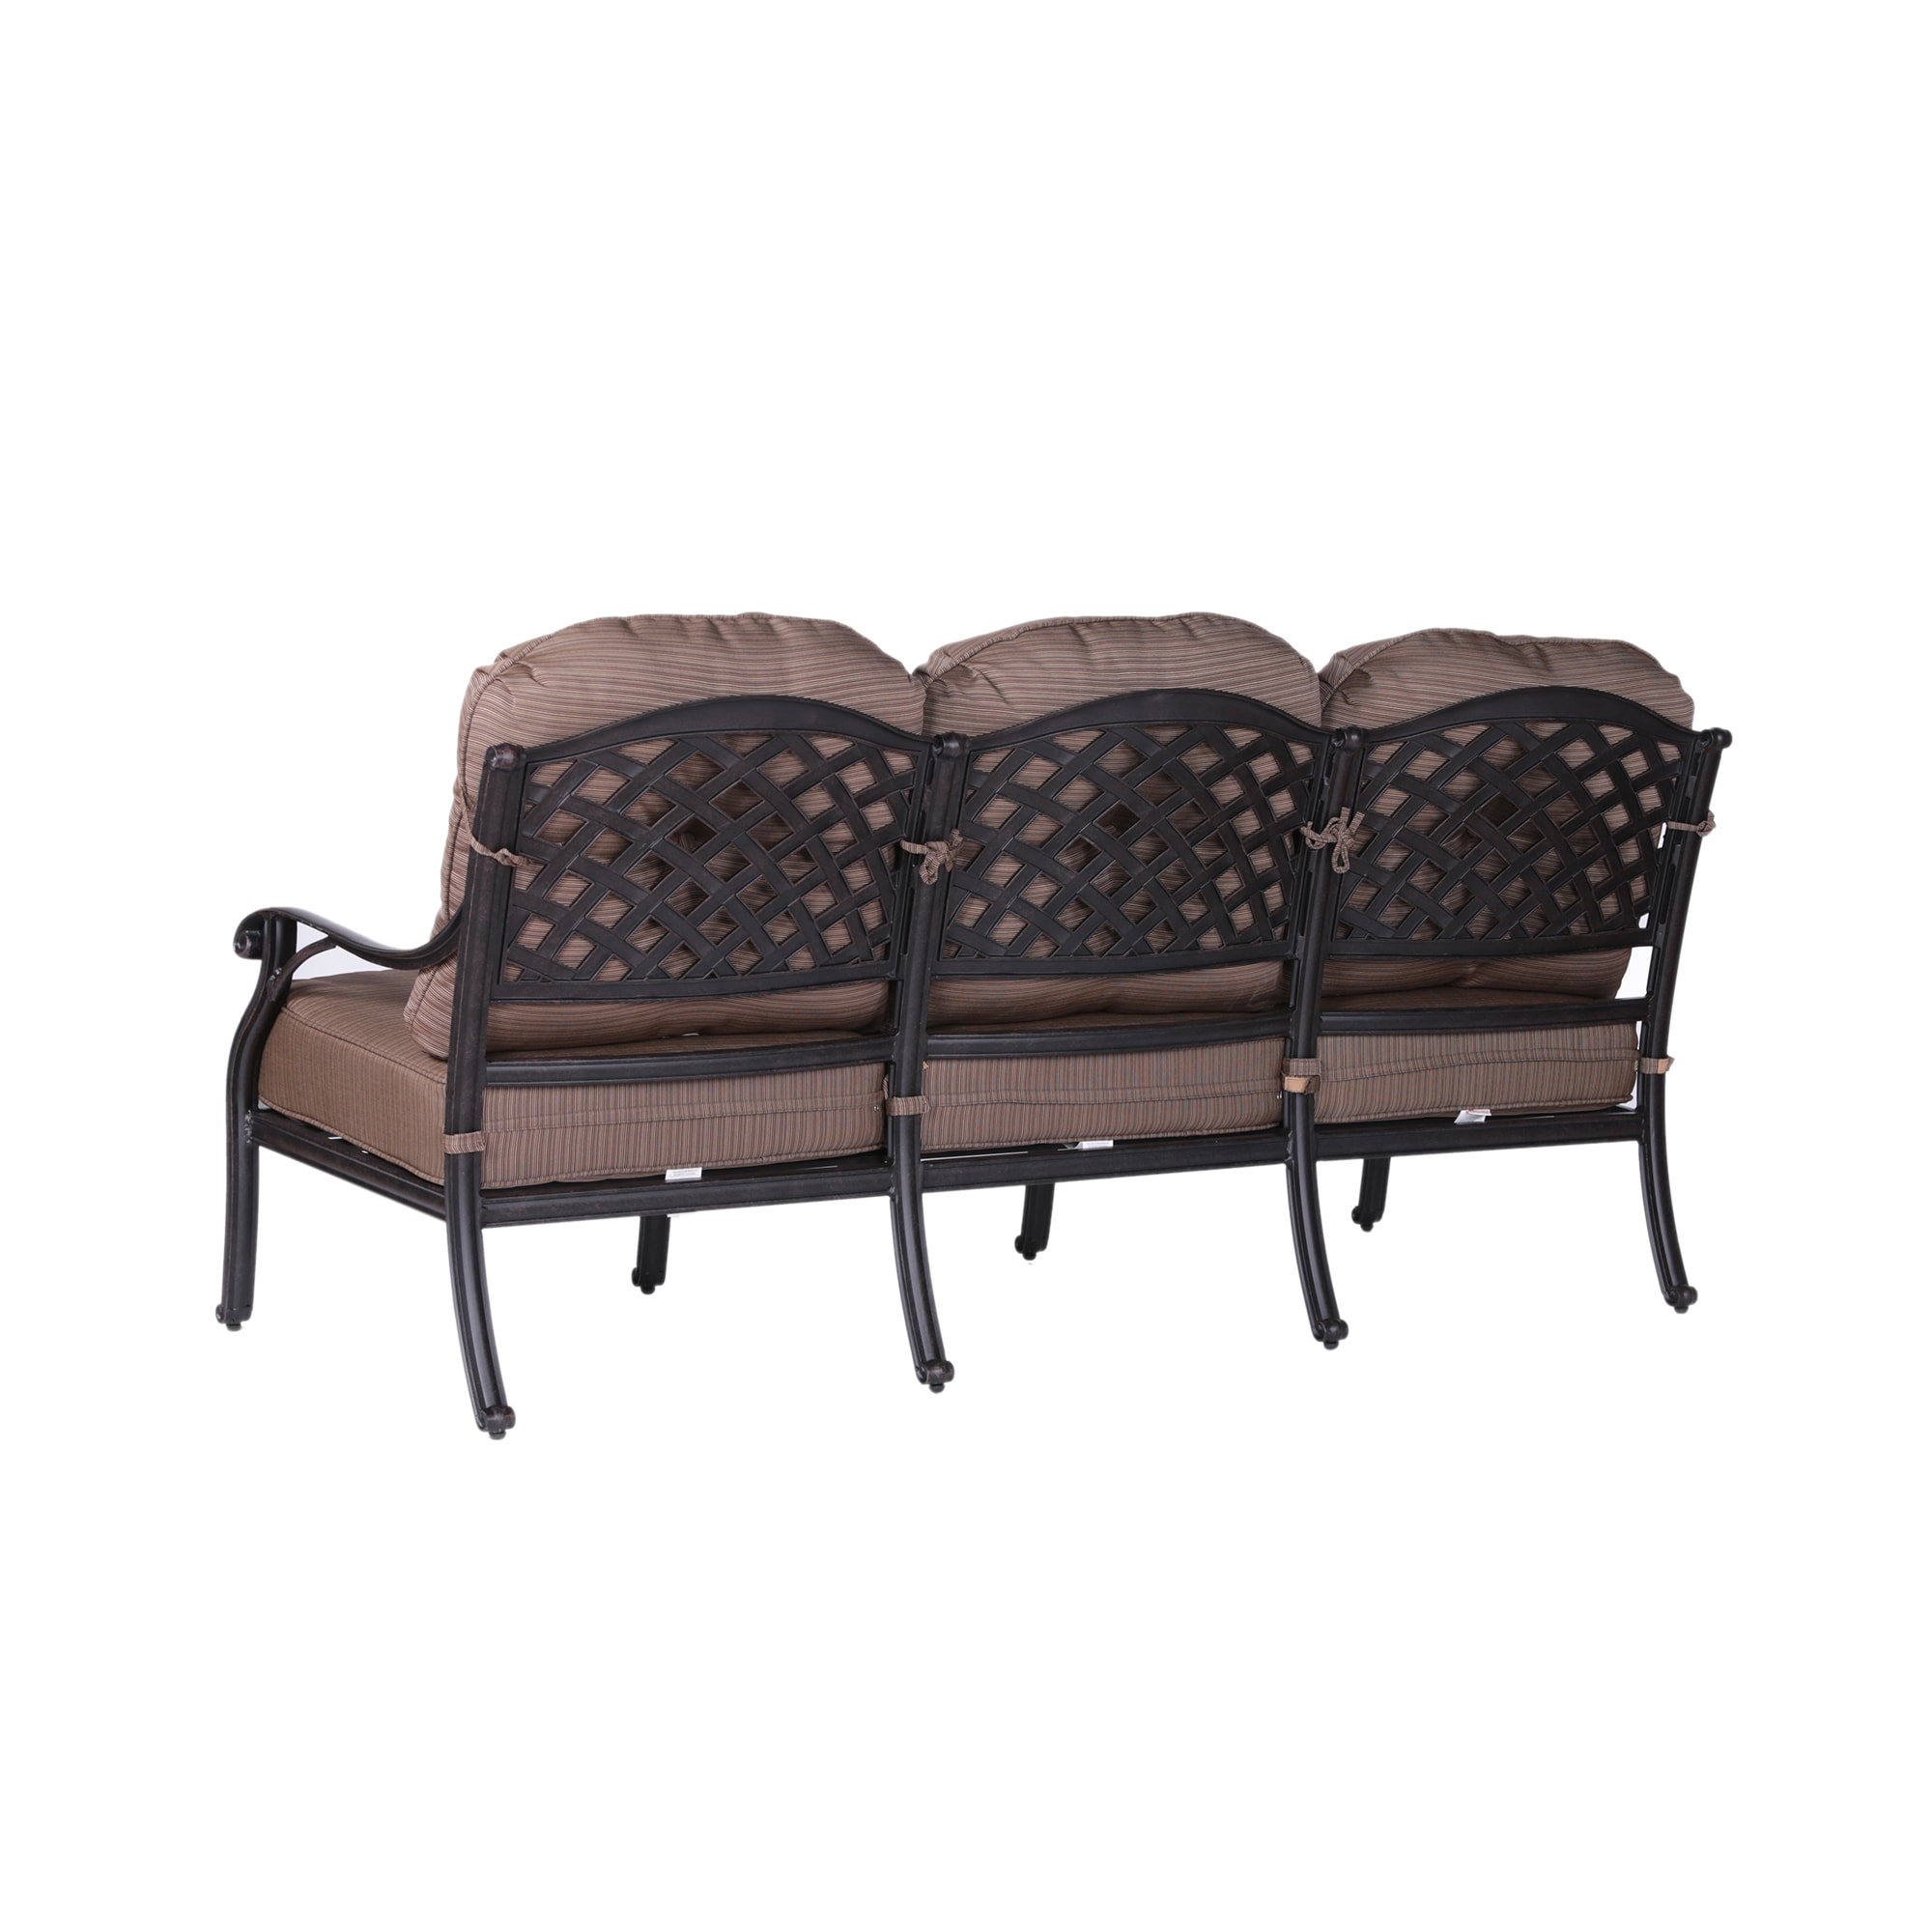 Yorkshire Aluminum High-back Sofa with Cushions - Free Shipping ...